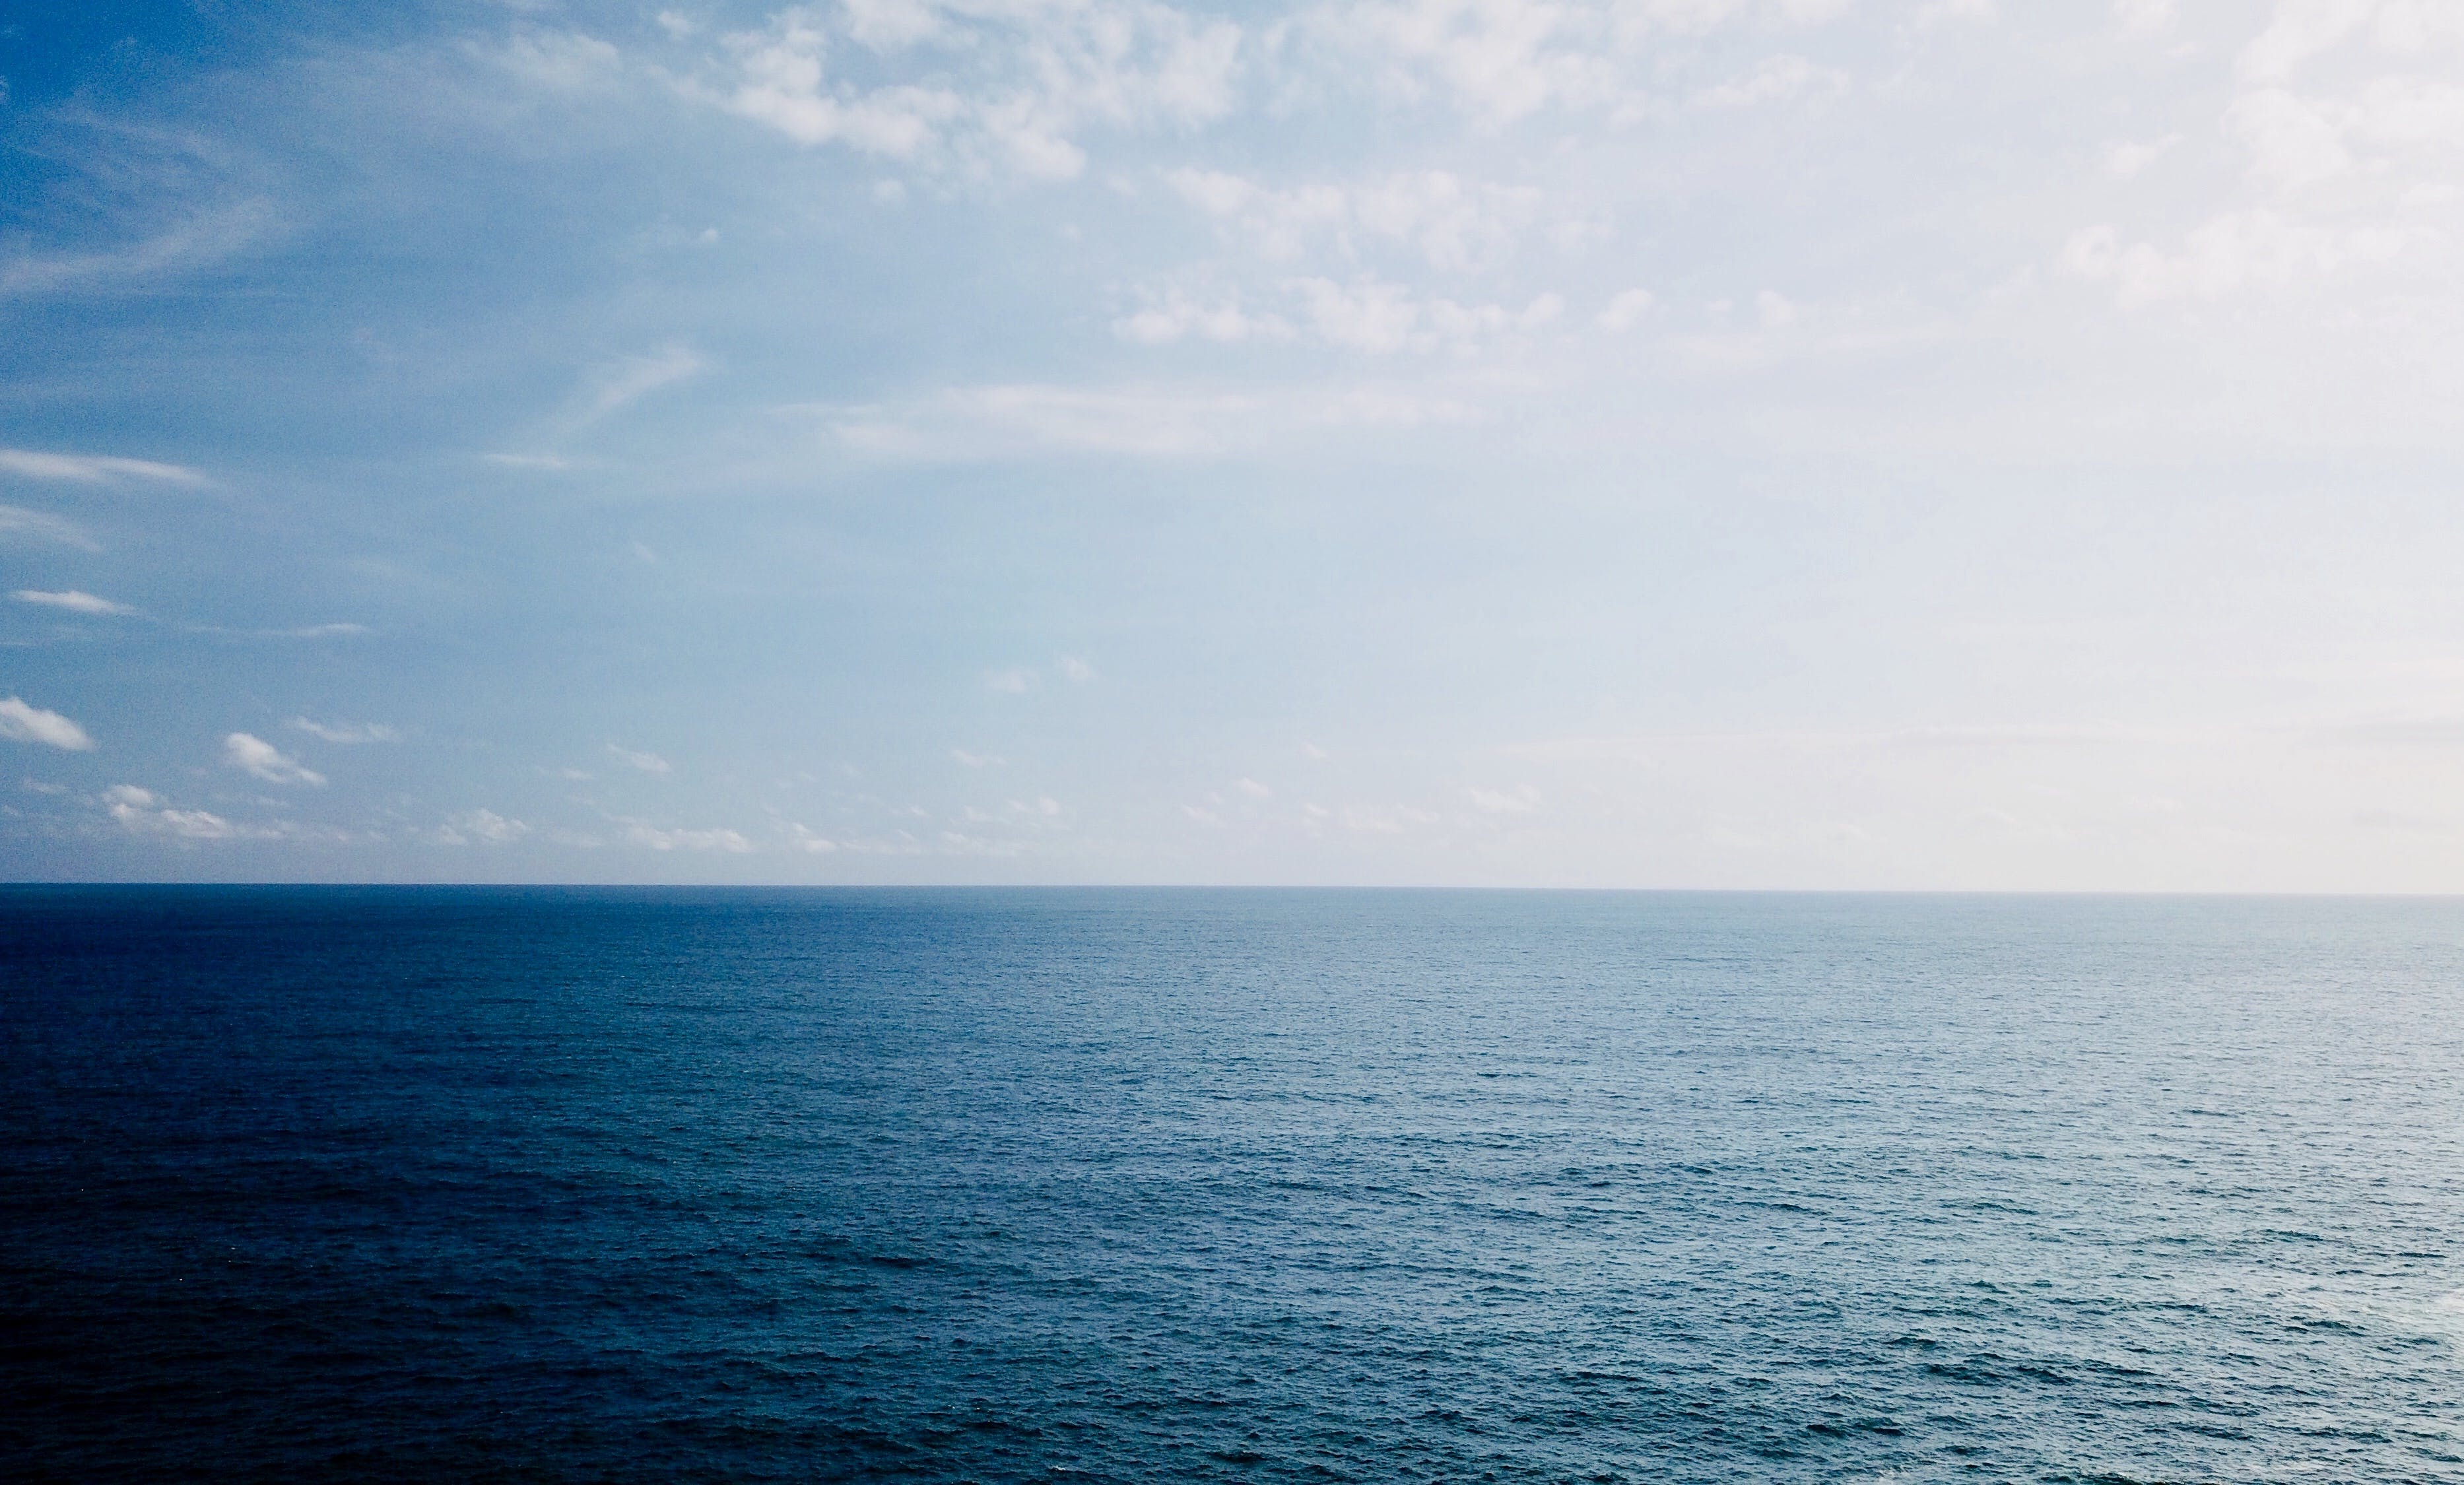 Ocean during Day